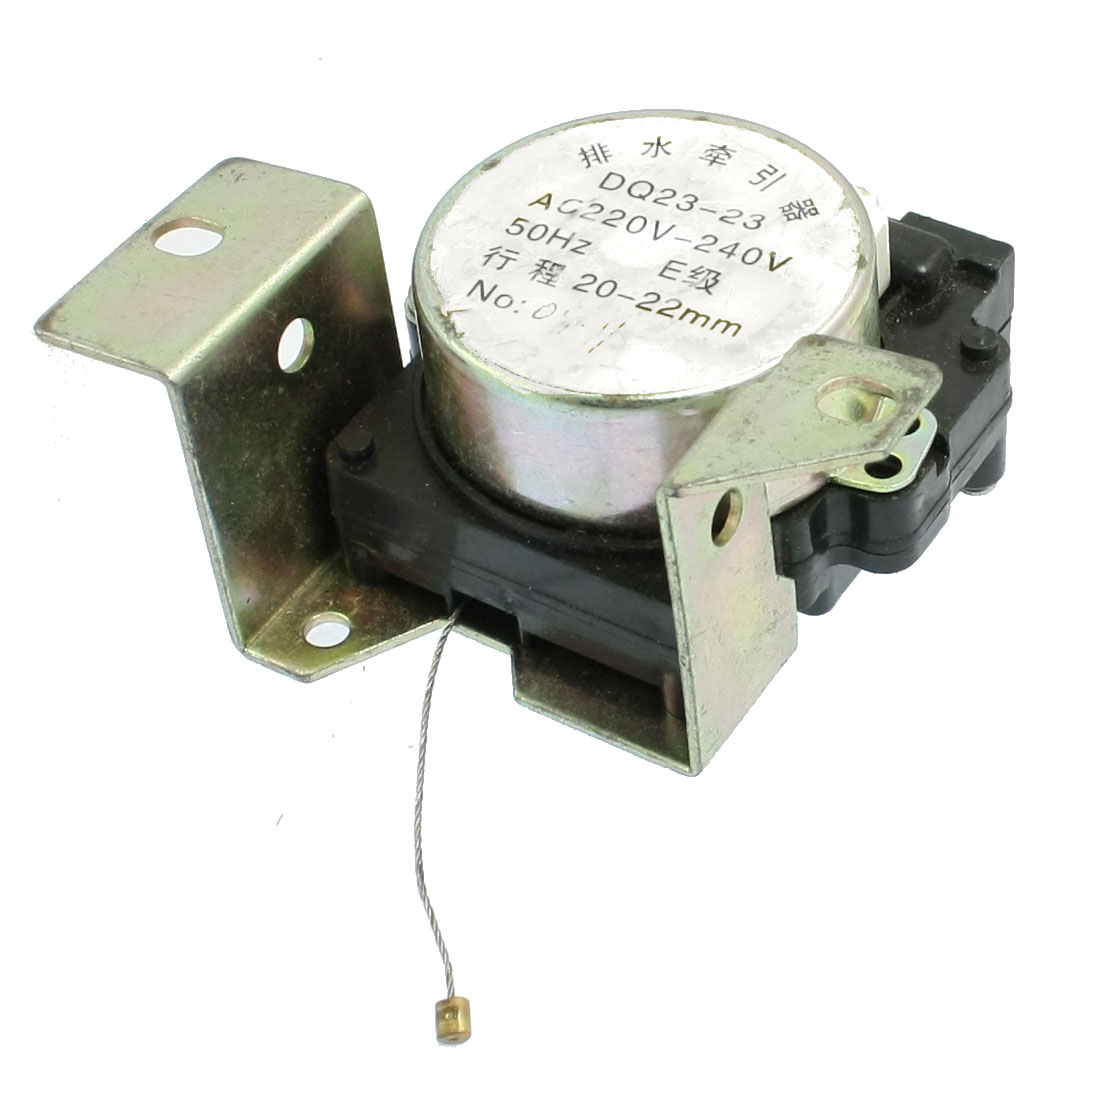 Repairing Part AC 220-240V Drain Motor Tractor for Sharp Washing Machine